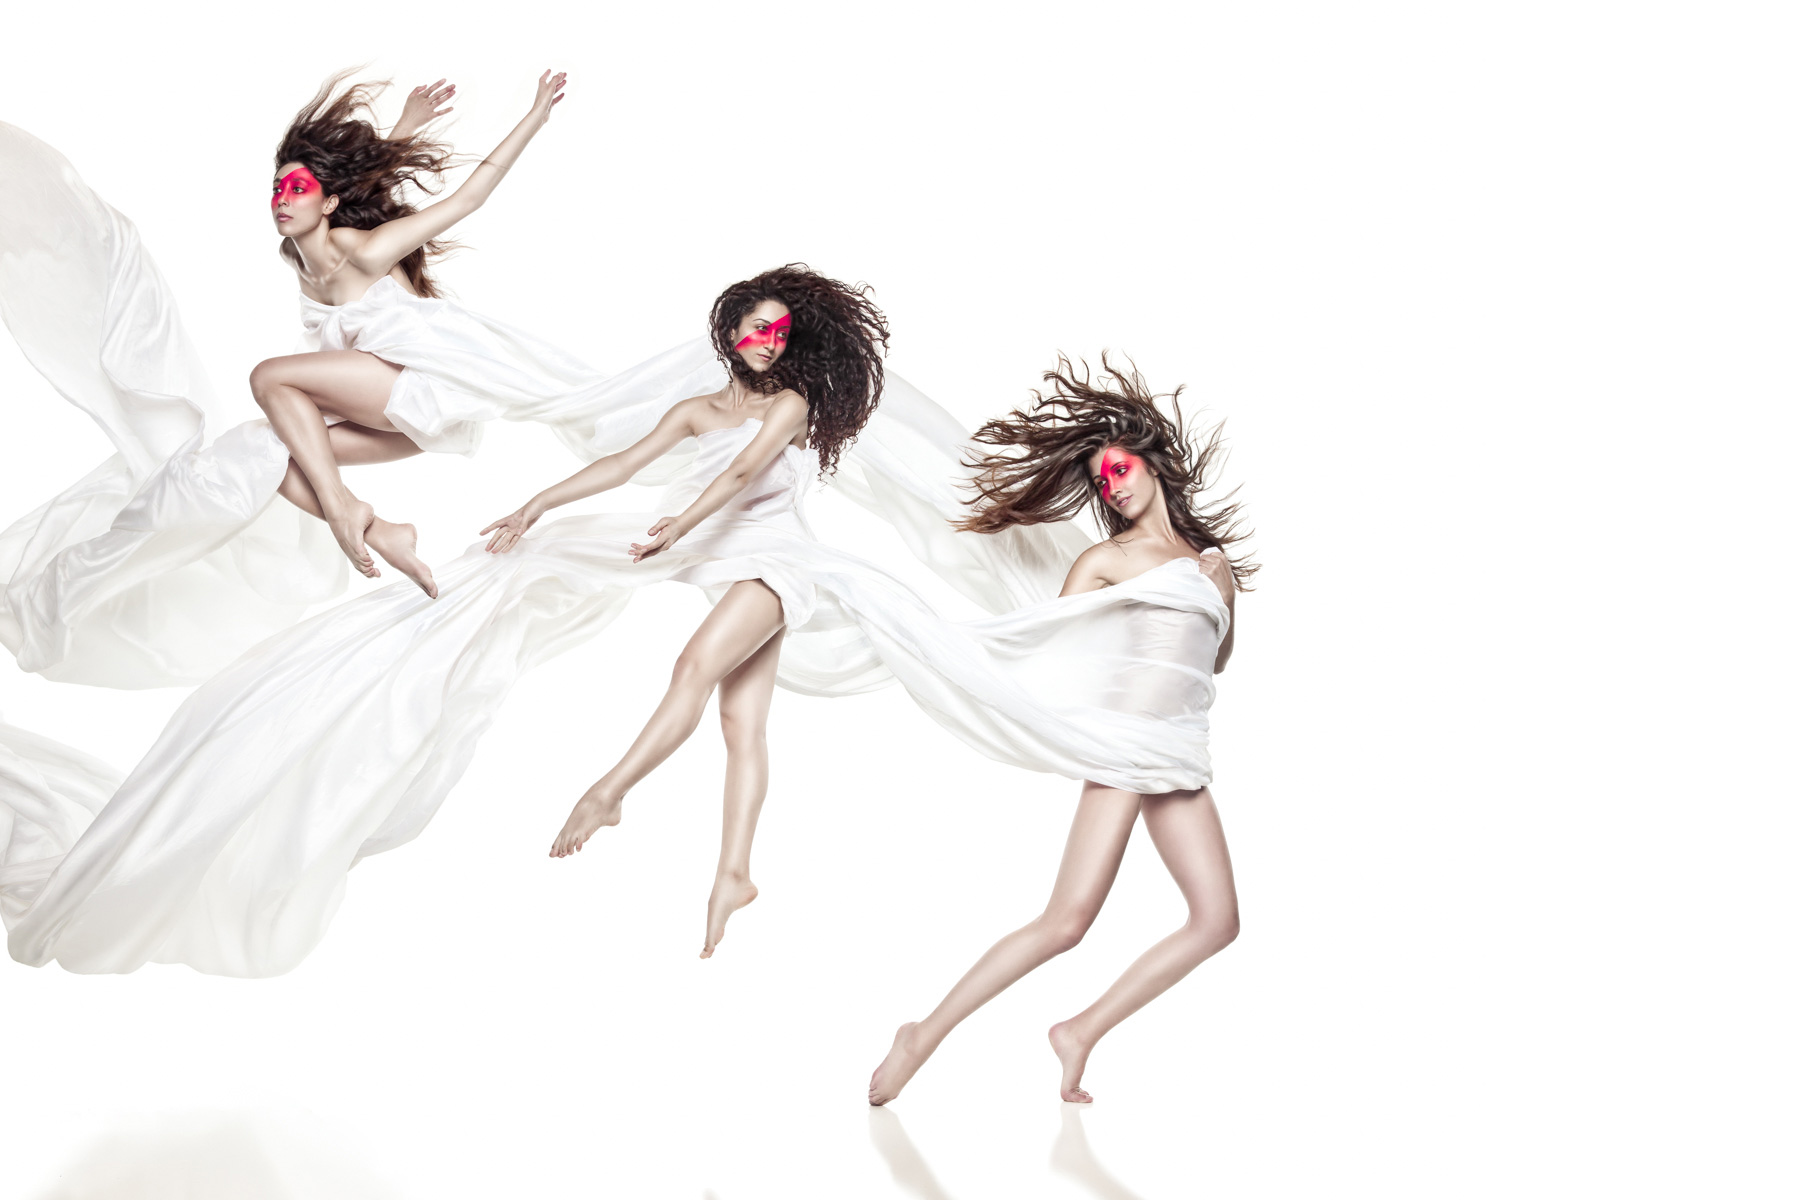 Kitfox Valentín : Dancers Leaping in White